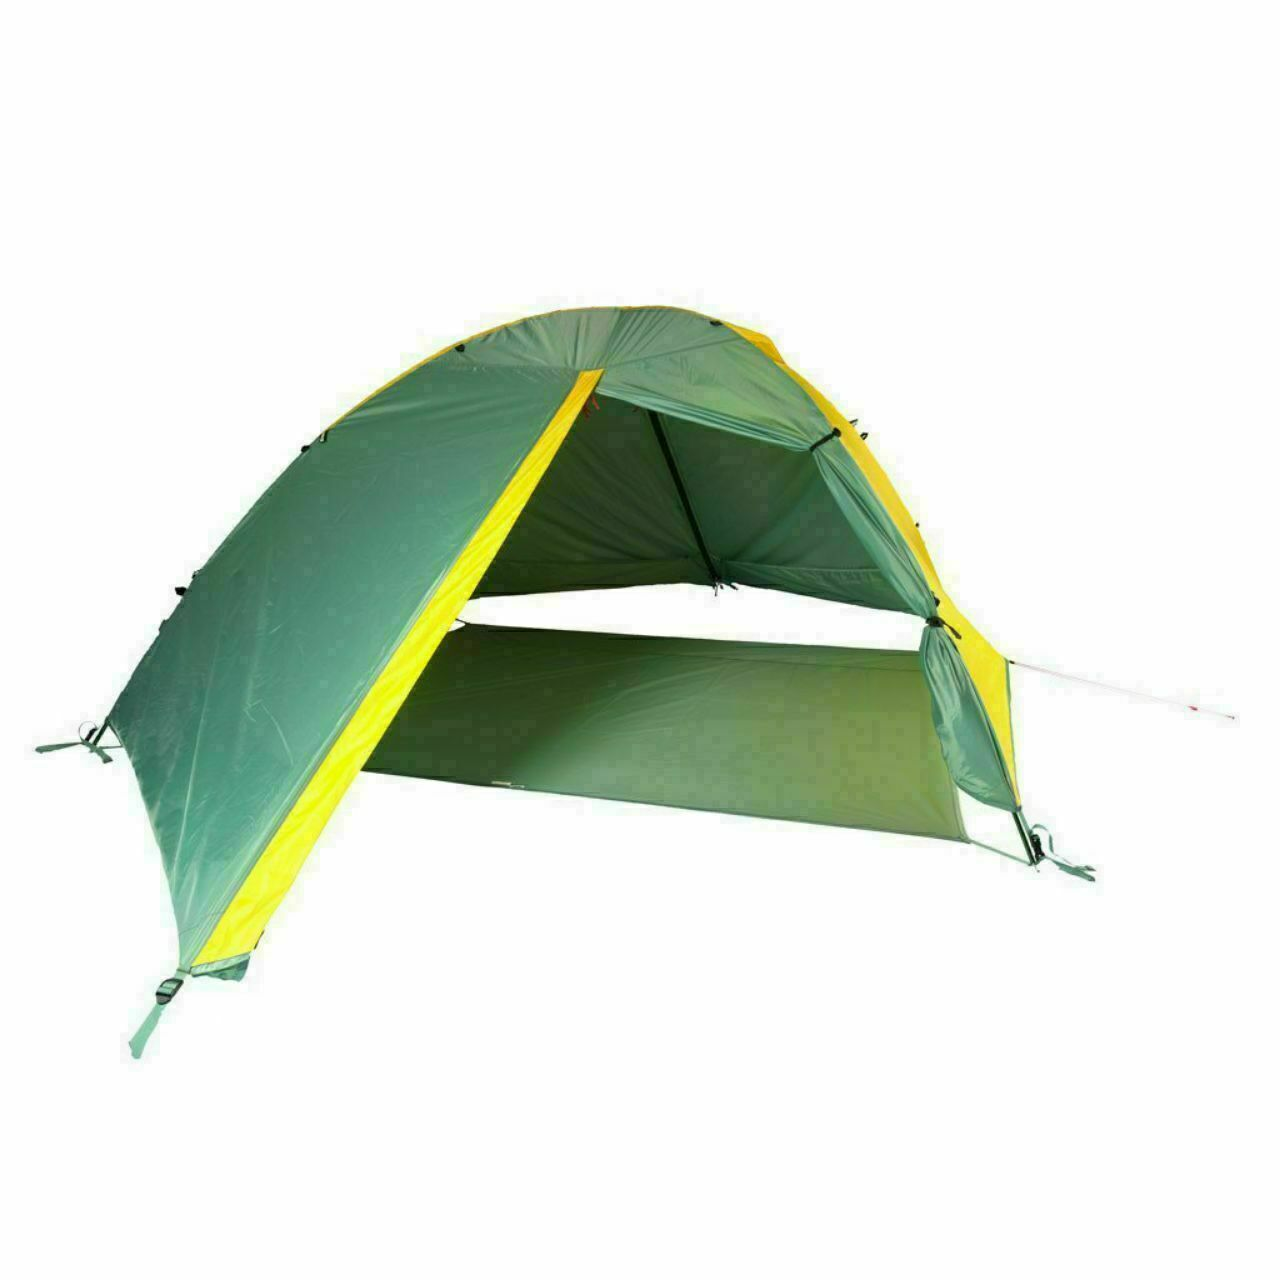 Mons Peak IX Footprint to Fit Night Sky 3 person (3P) Tent